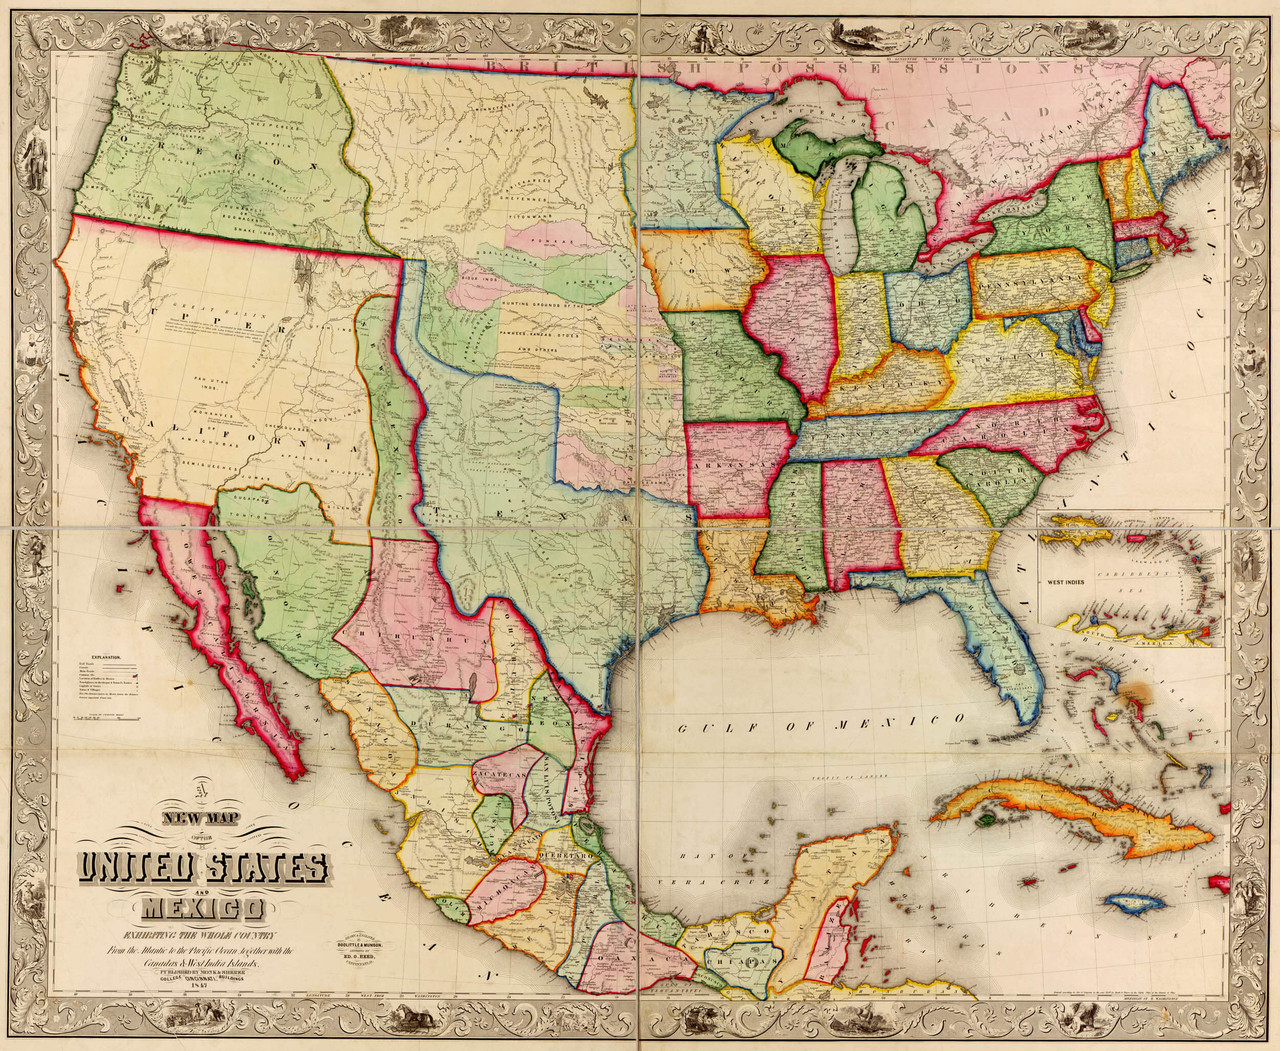 Map Of The United States Map Of The United States.Historical Map Of The United States And Mexico 1847